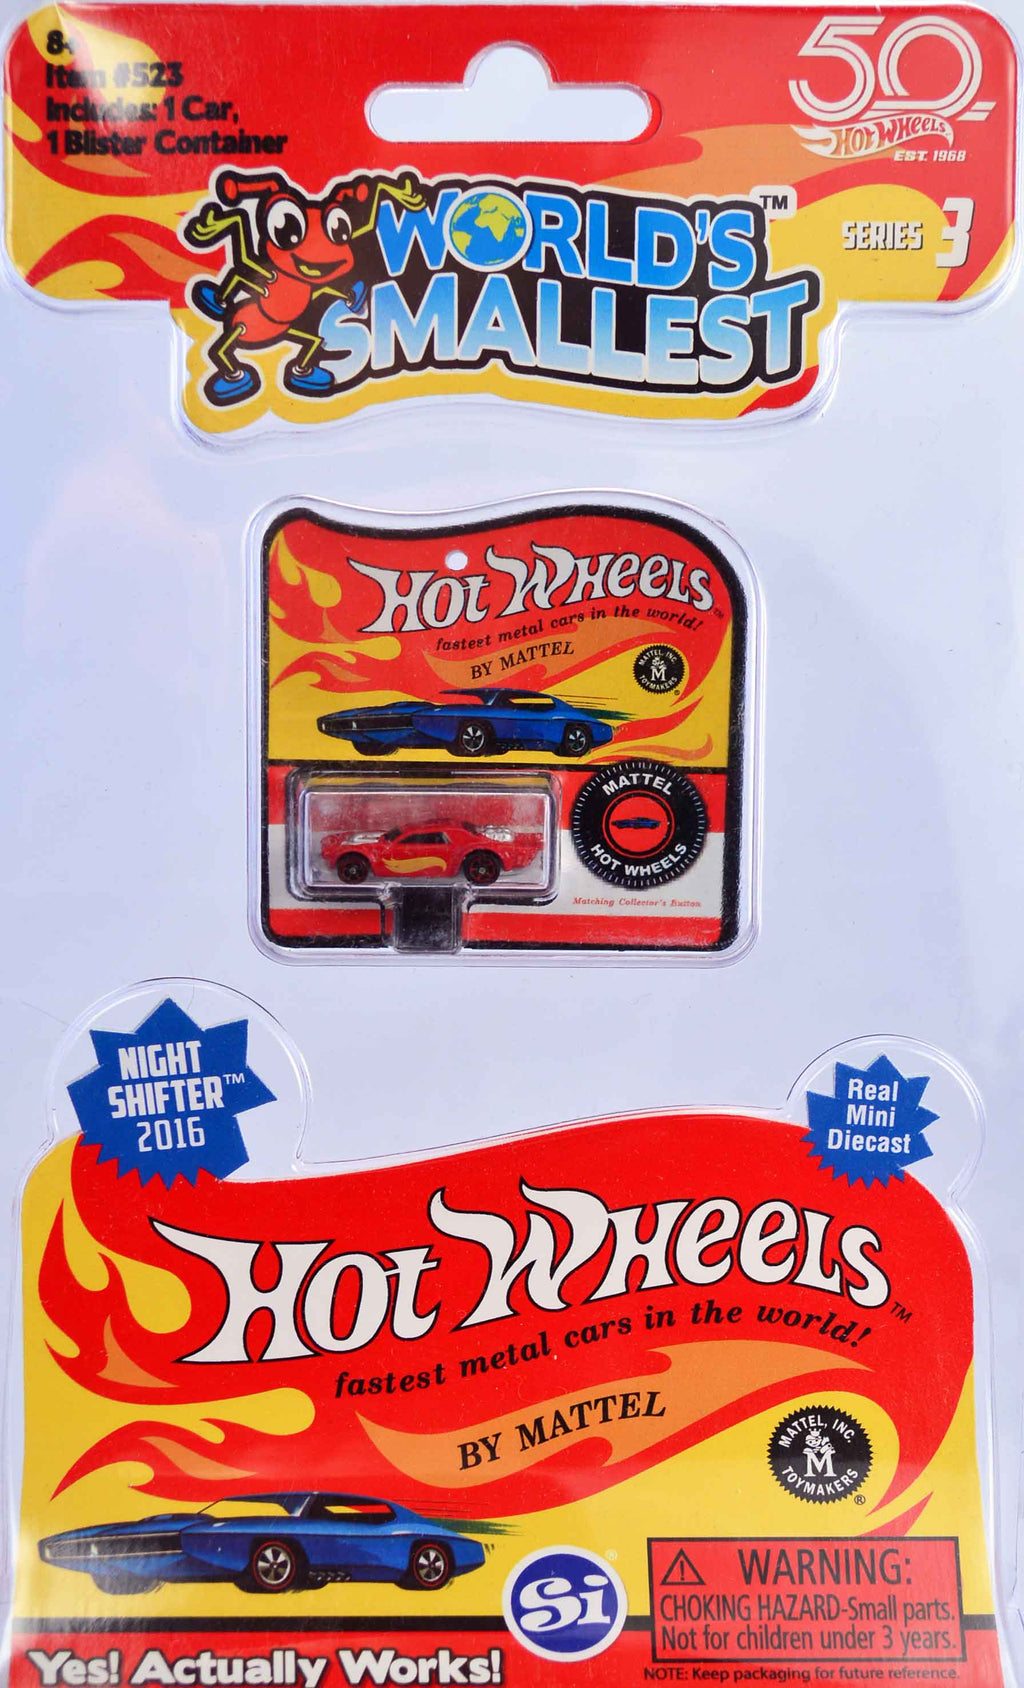 World's Smallest Hot Wheels - Series 3 - Night Shifter 2016